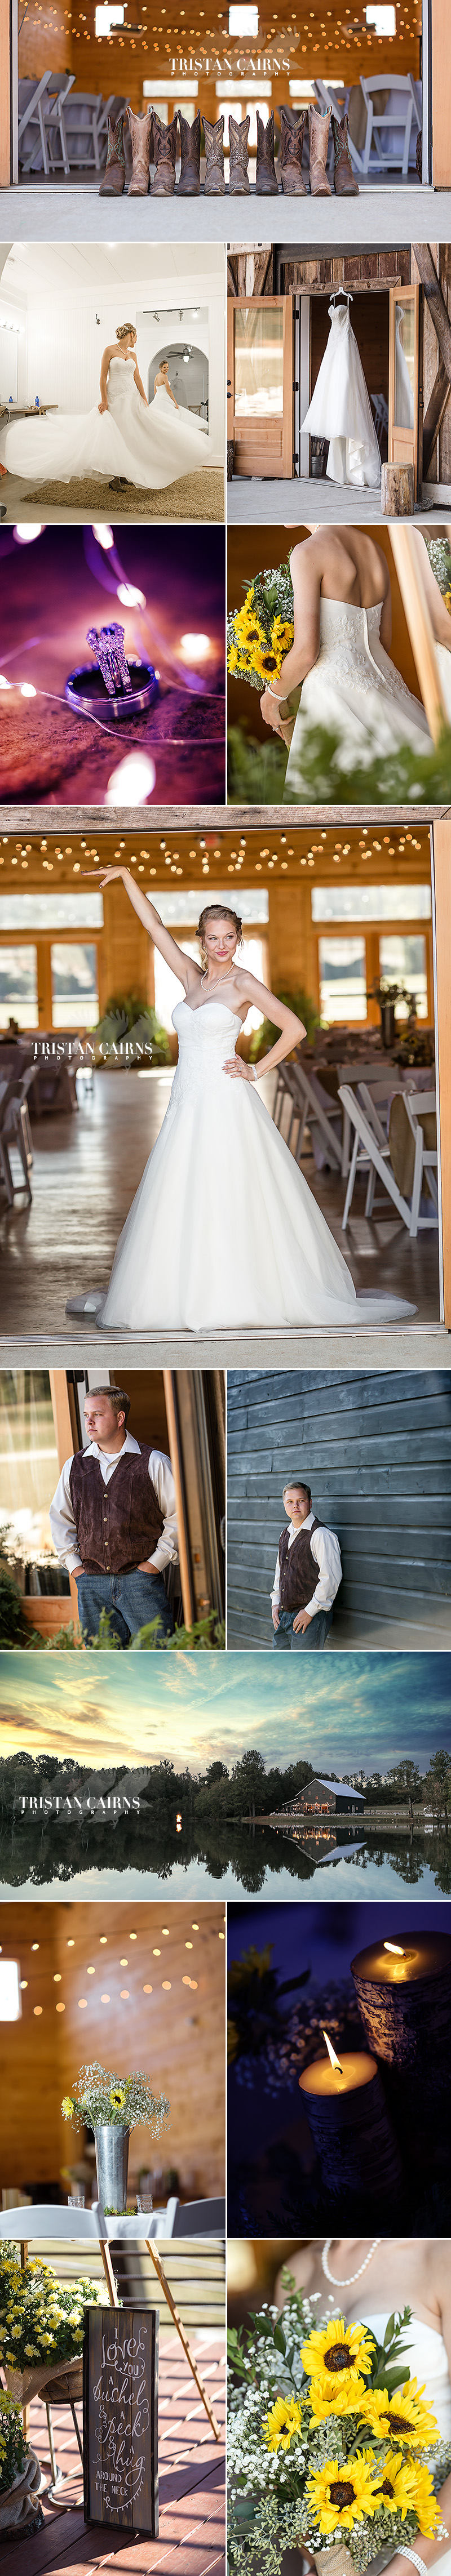 lagrange-ga-wedding-photographer-2